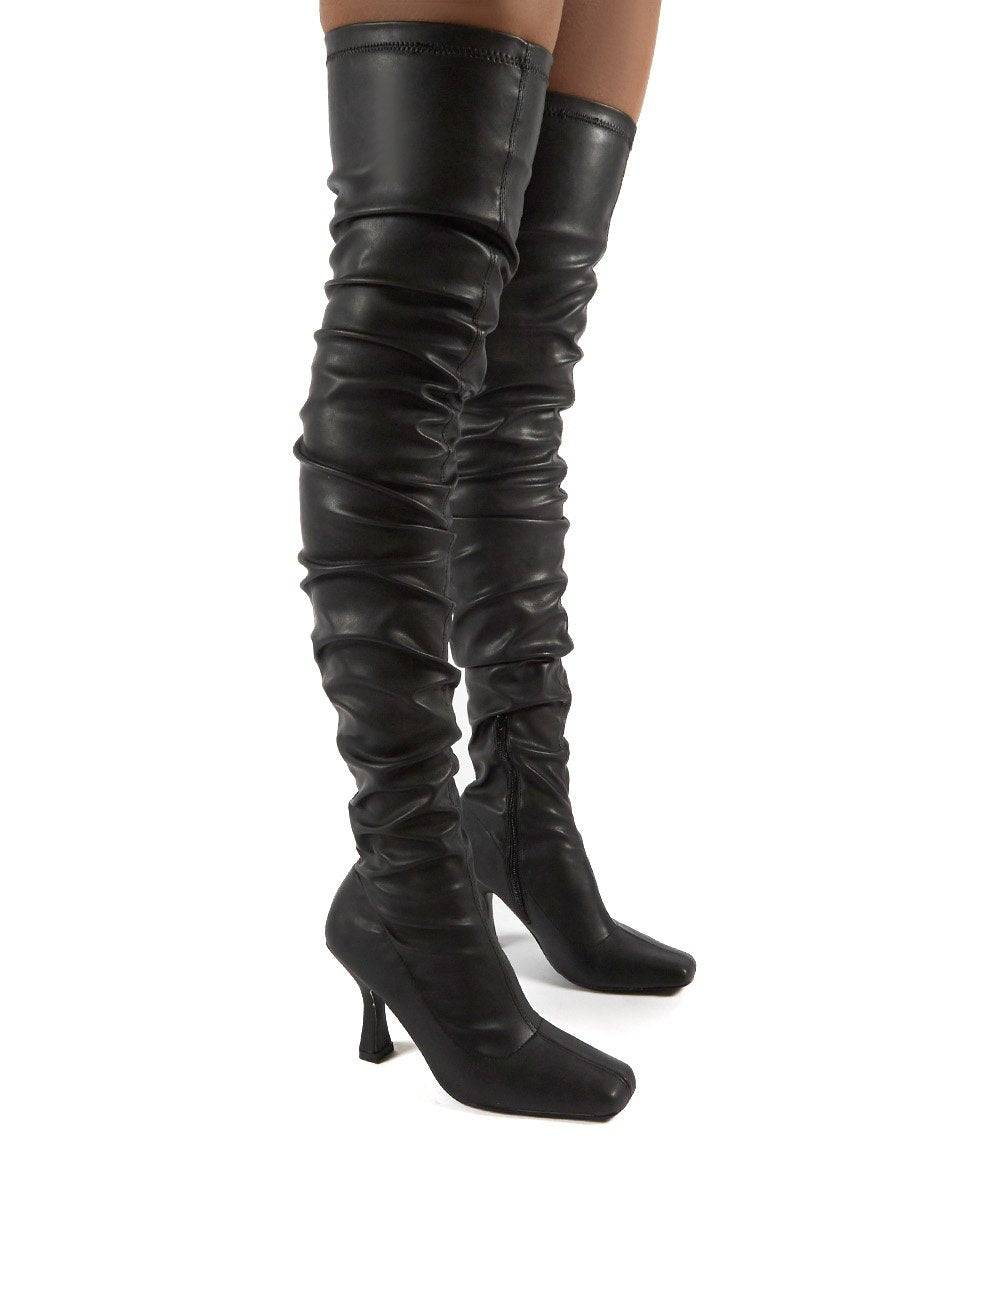 Public Desire US Outlaw Black Ruched Over The Knee Heeled Boots - US 5